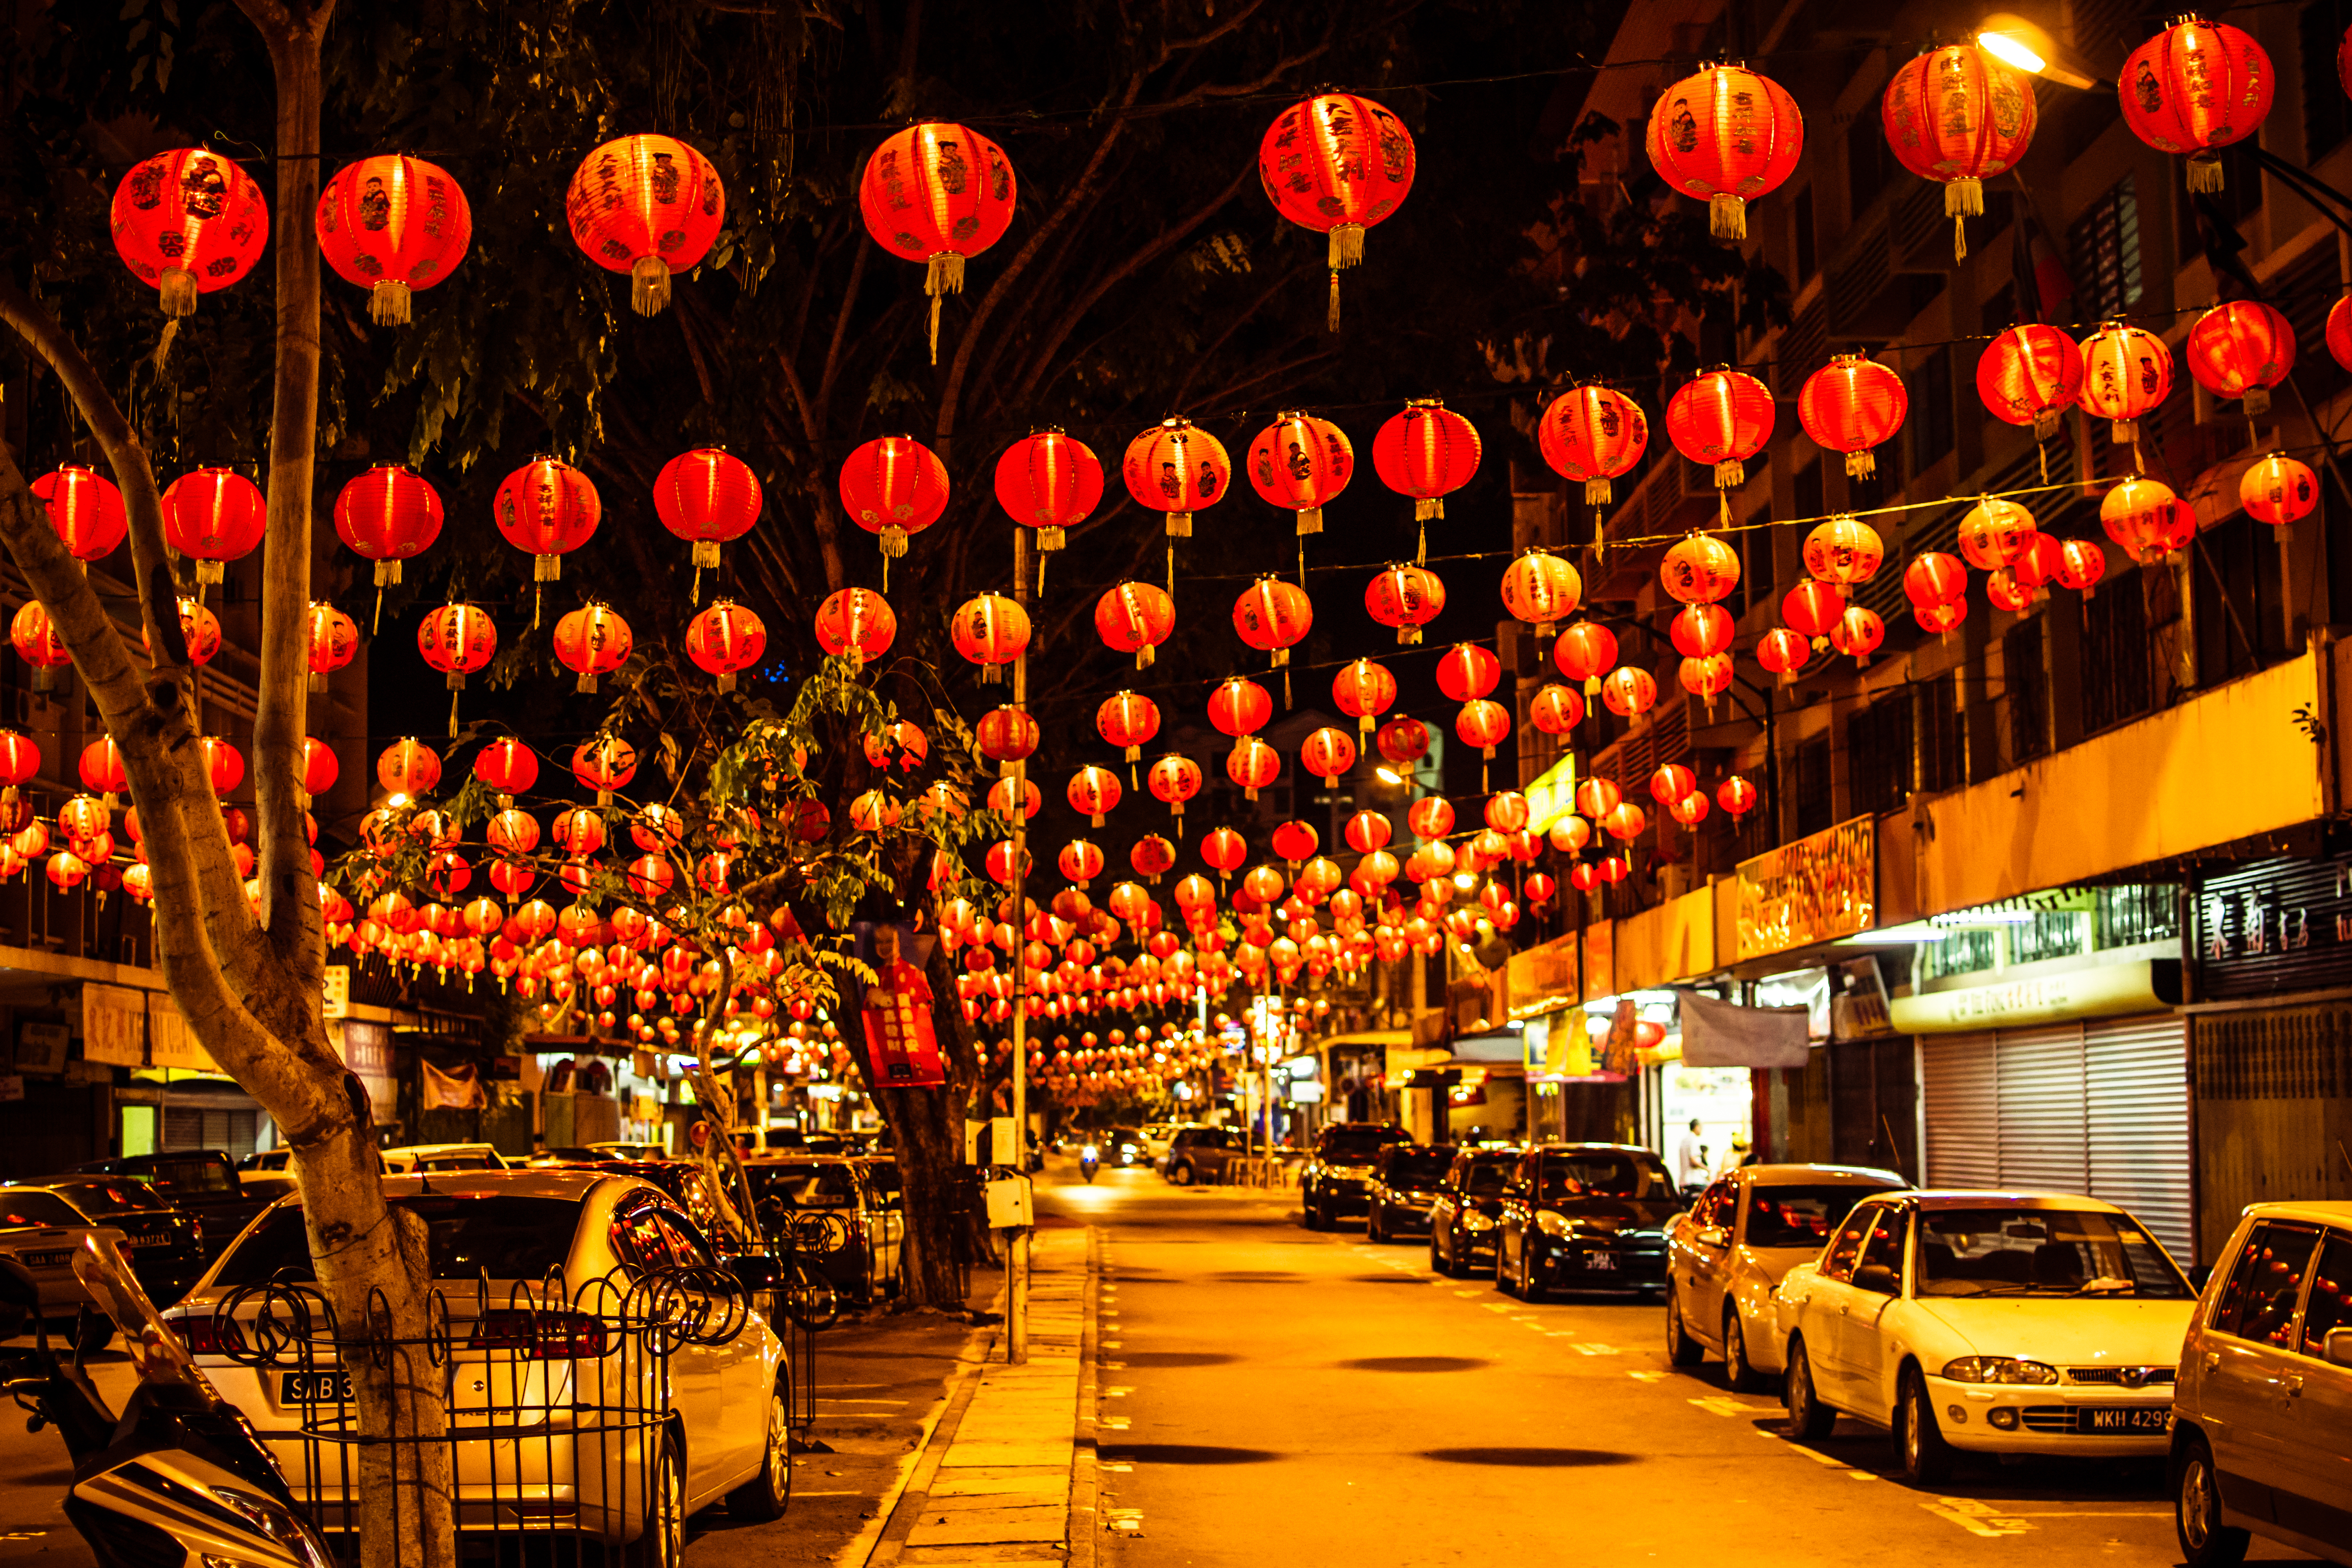 filegaya street during chinese new yearjpg - What Is Chinese New Year